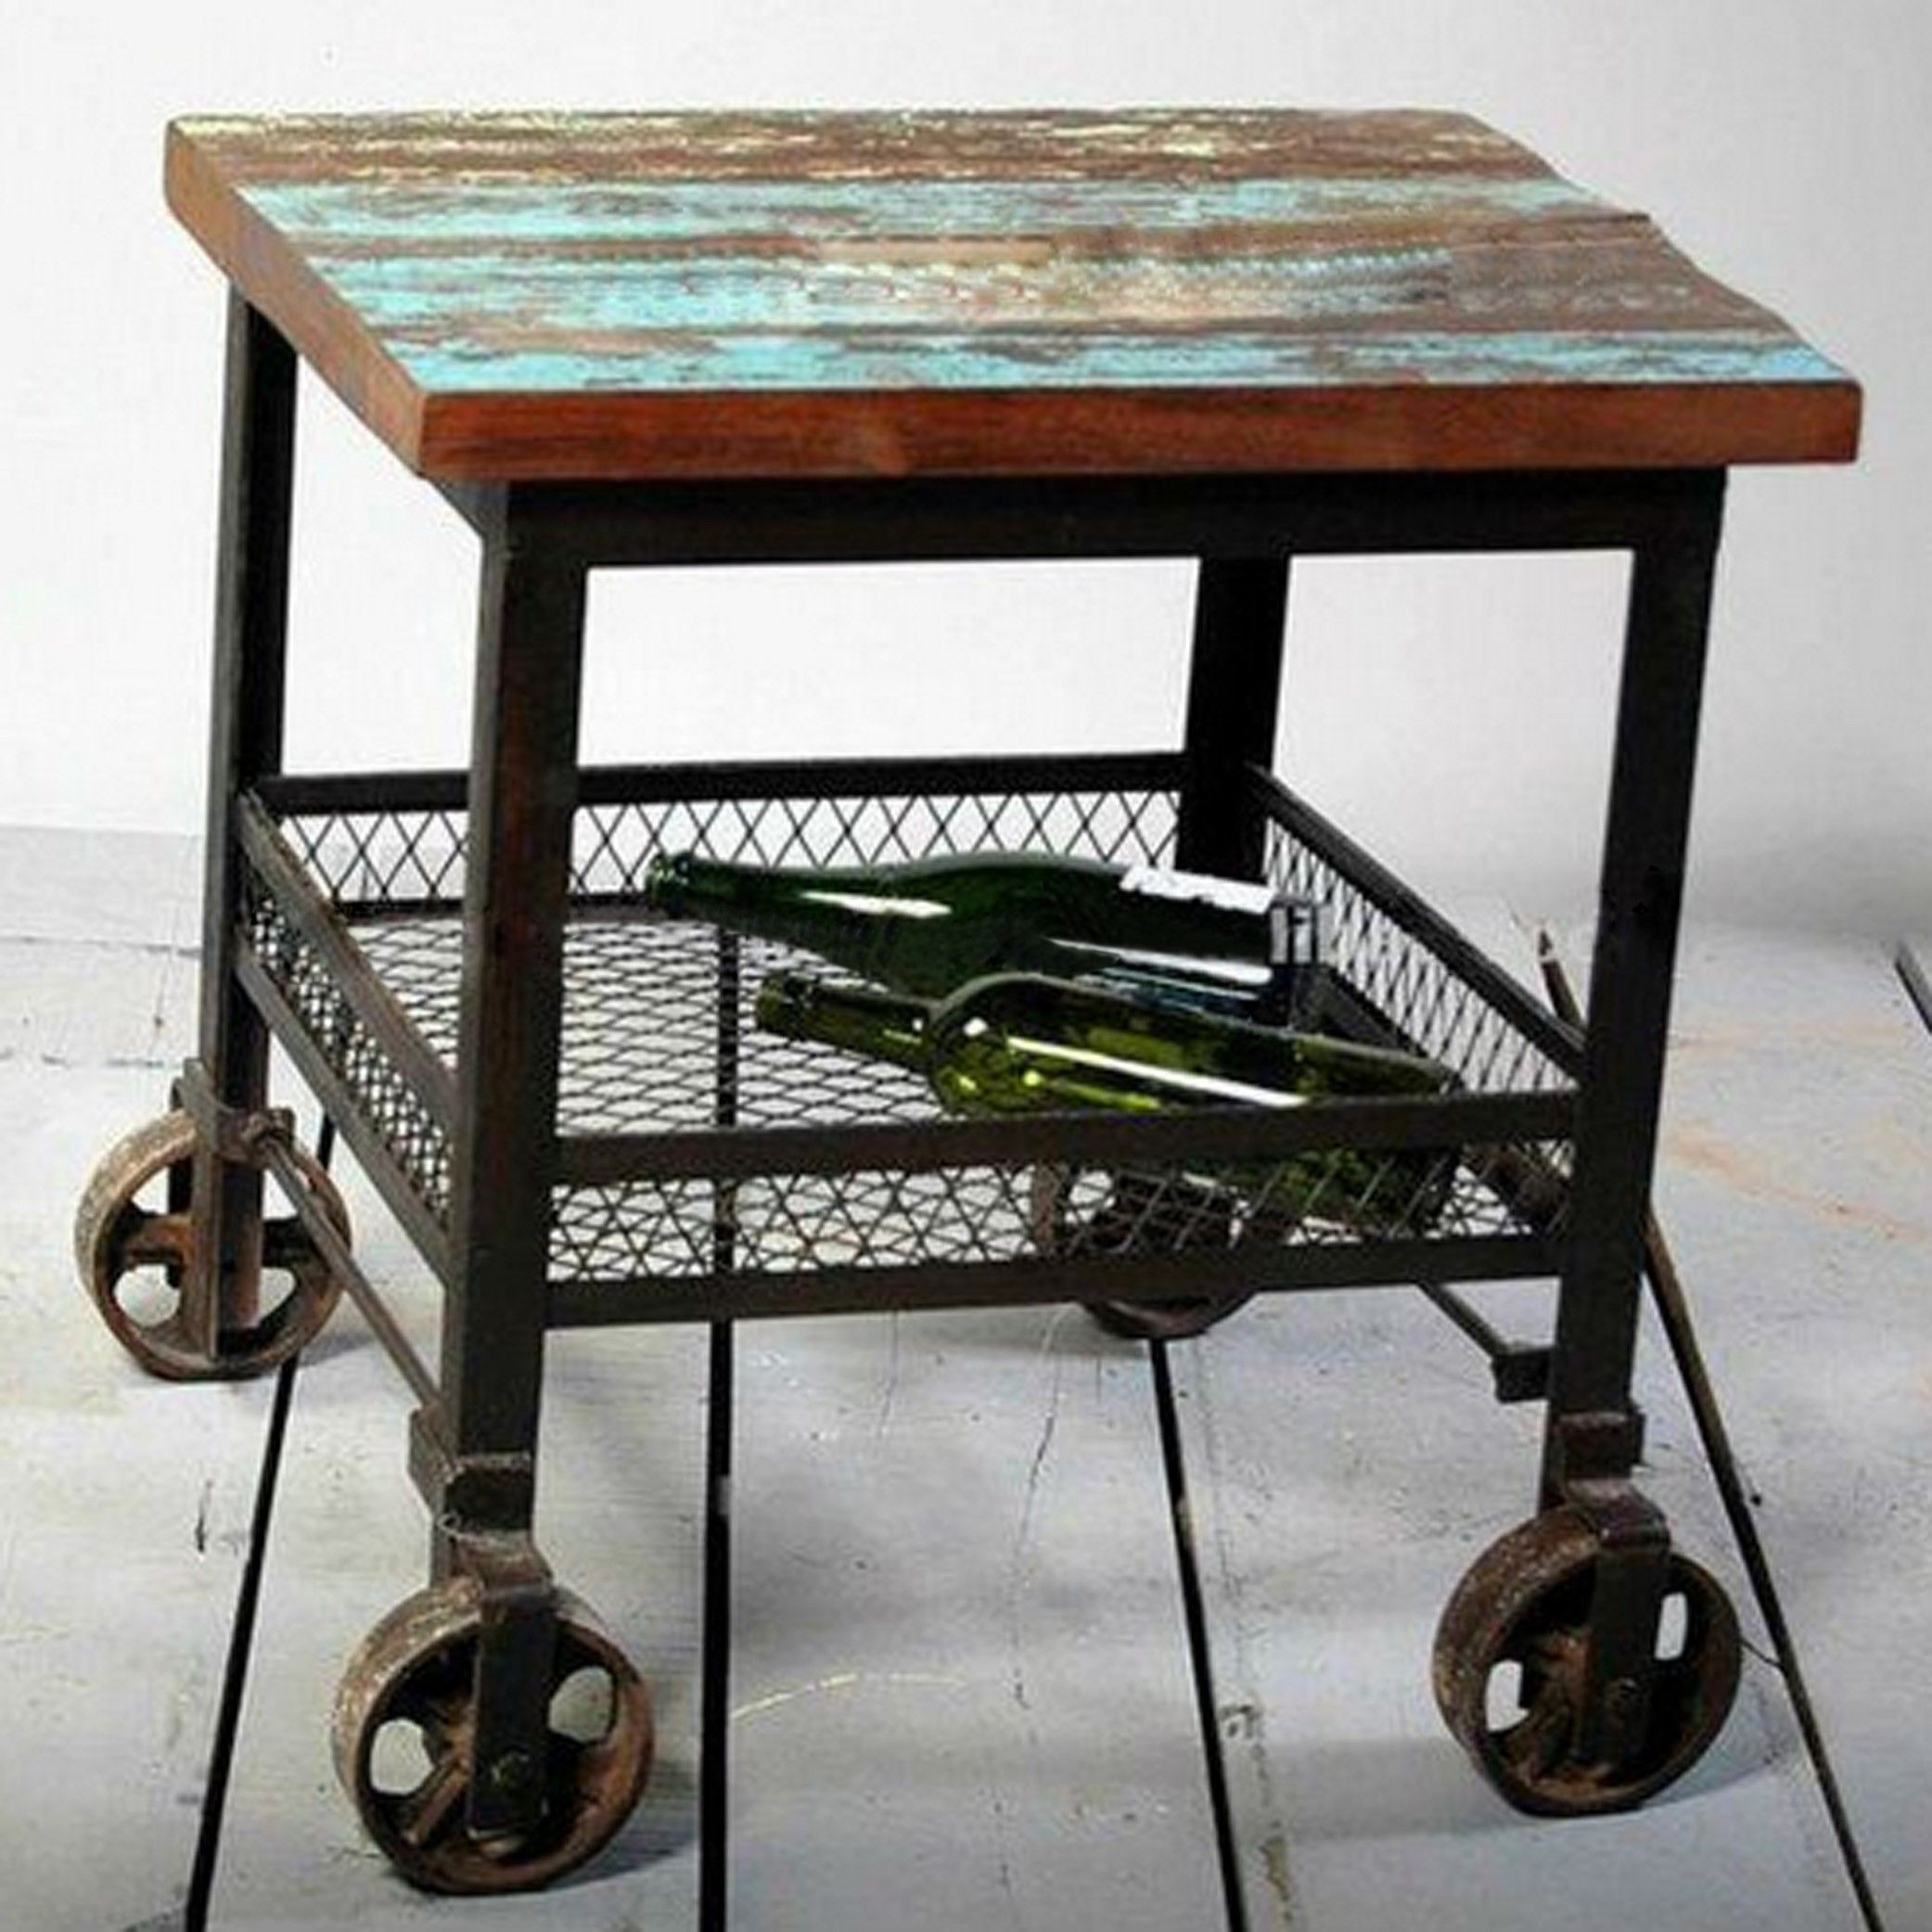 furniture vintage and minimalist industrial furniture table design with metal leg wheels wooden. Black Bedroom Furniture Sets. Home Design Ideas